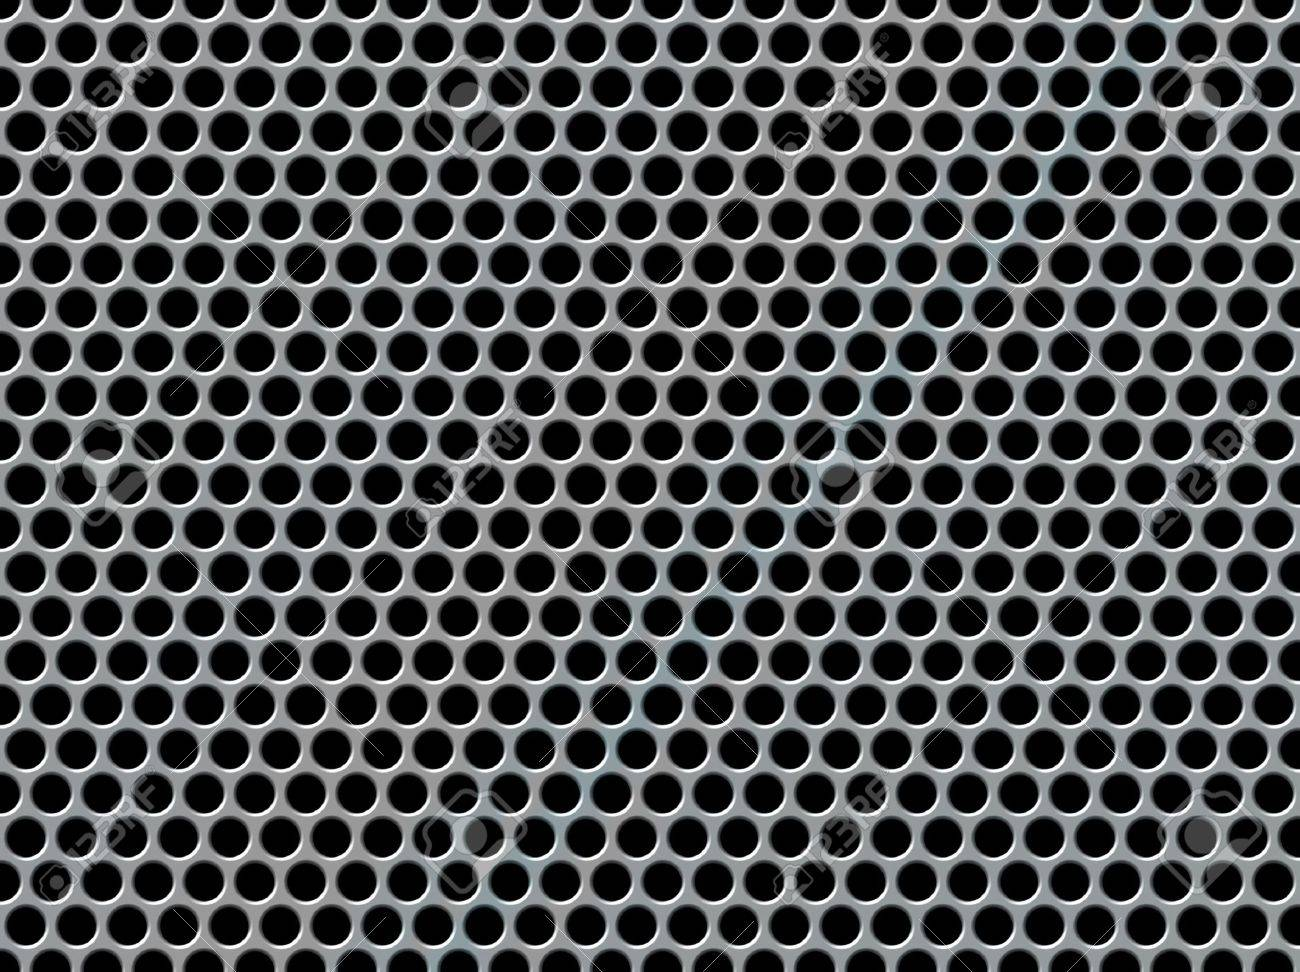 Abstract background with a perforated metal effect Stock Photo - 9851421